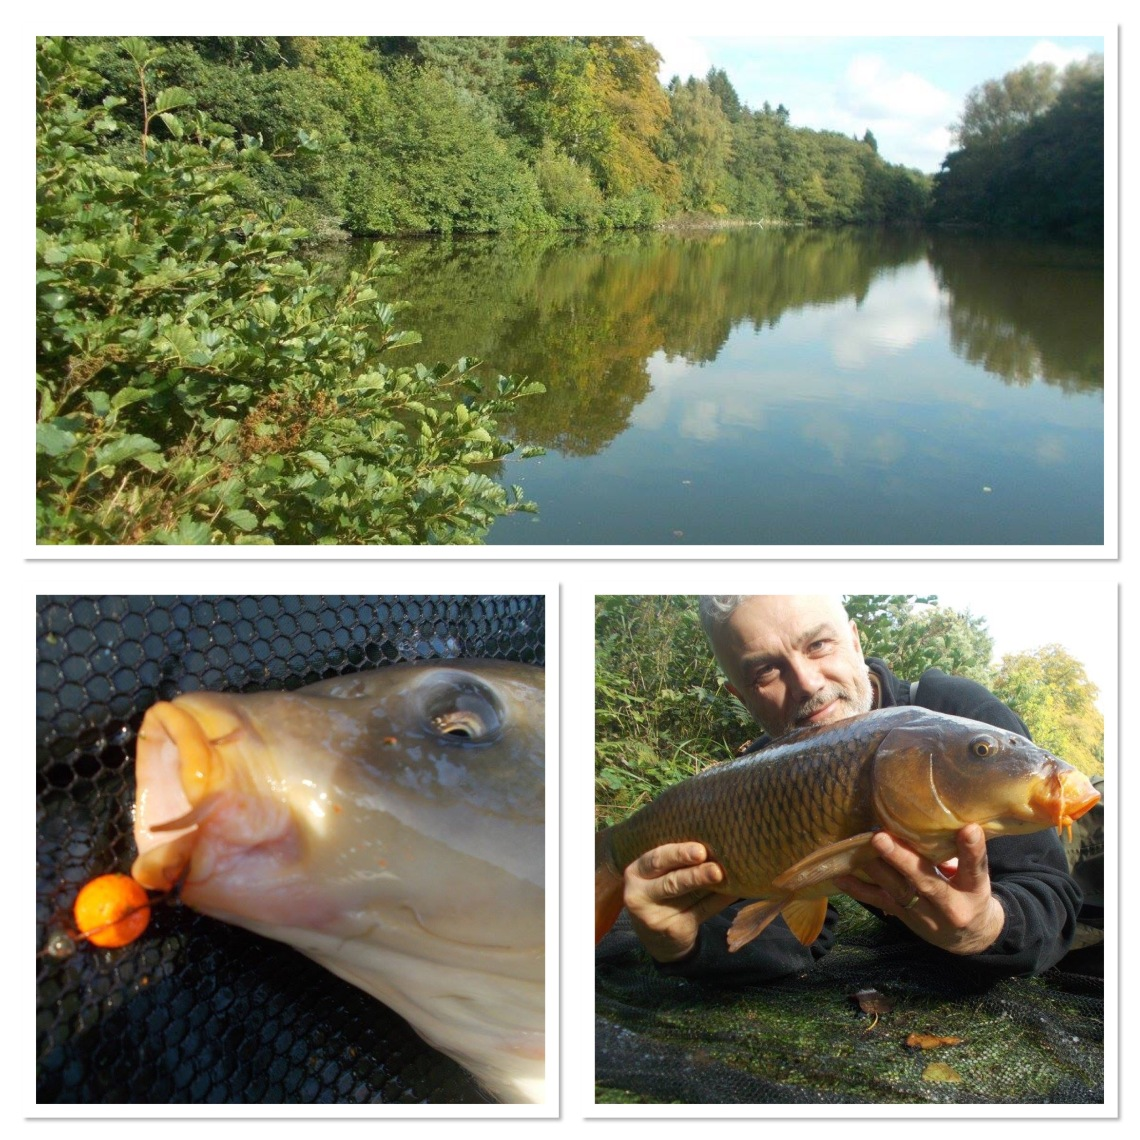 A nice venue and carp on the bank